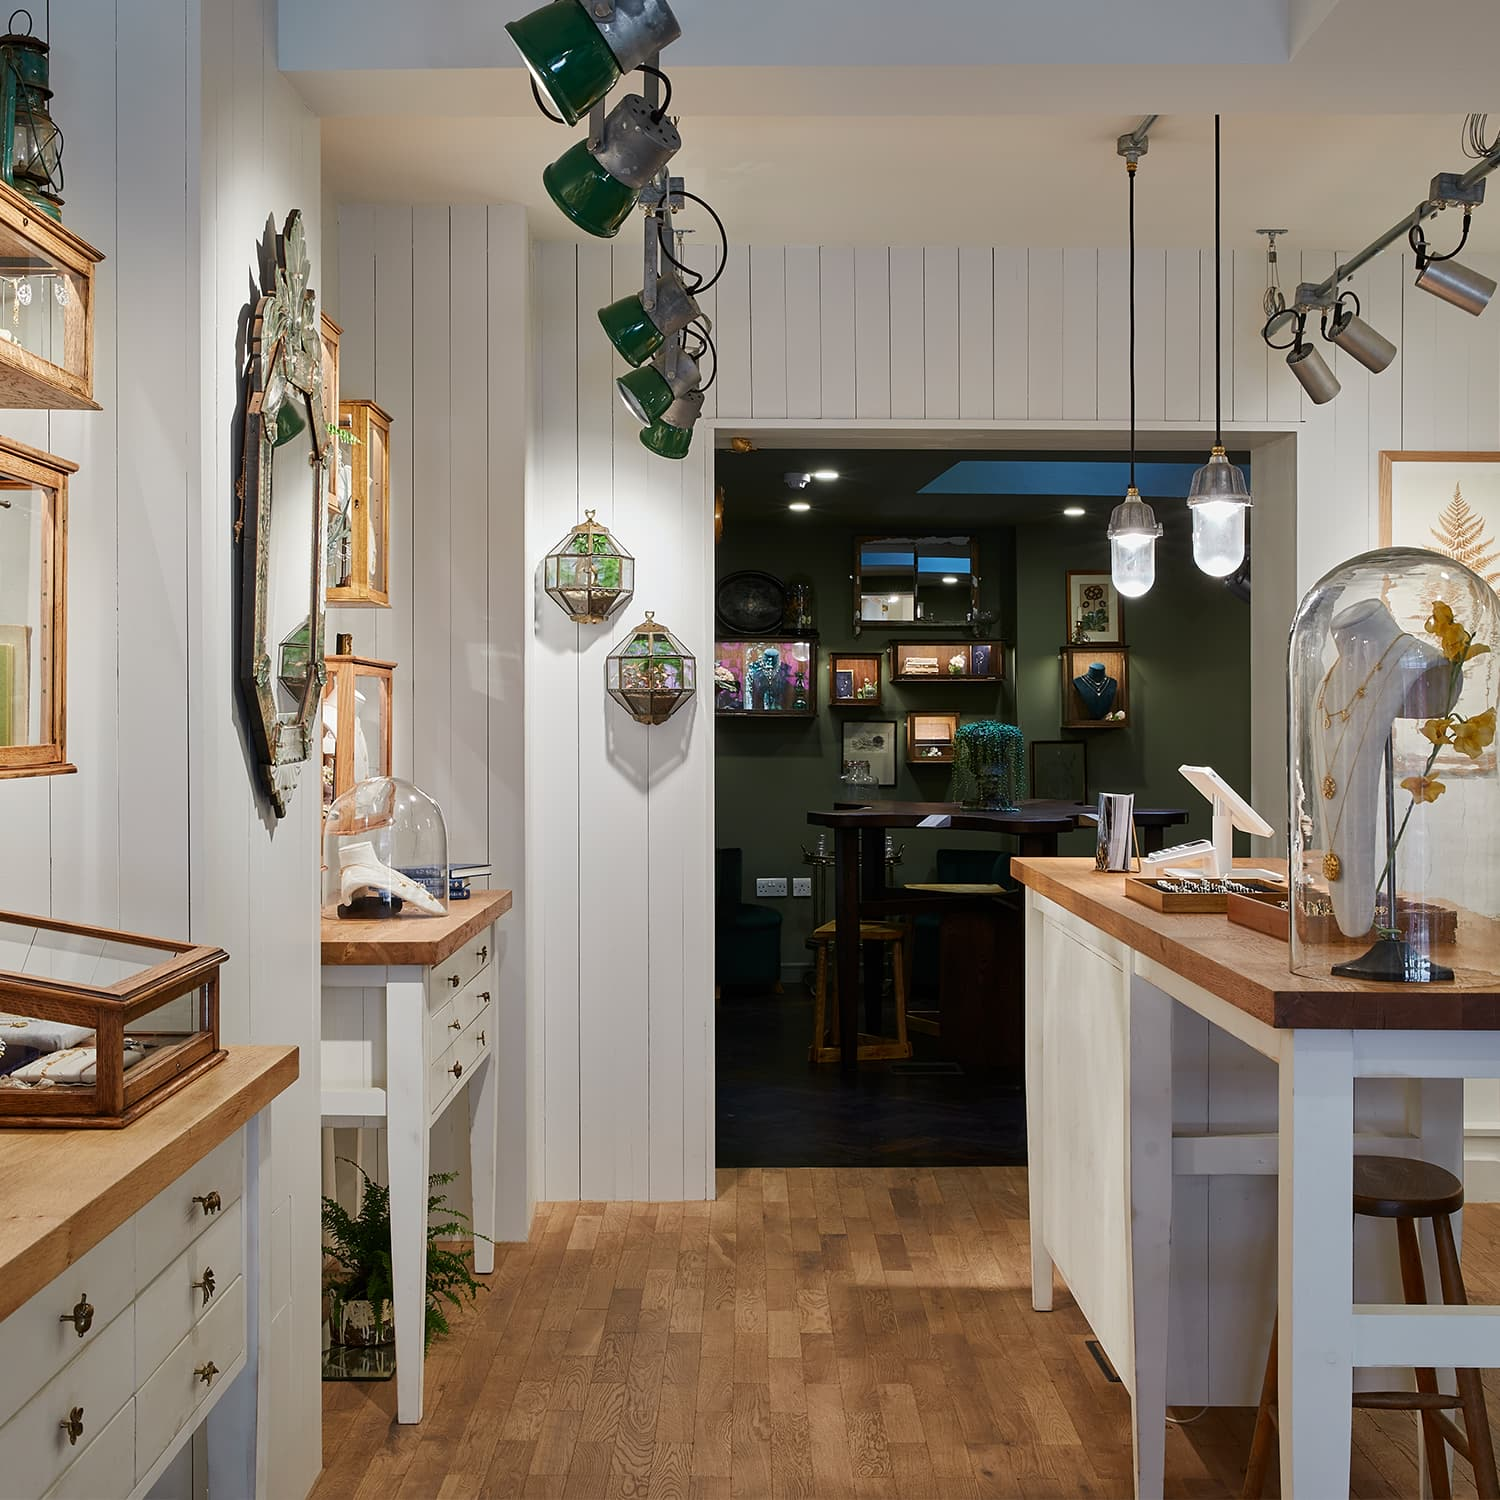 alex monroe jewellery flagship boutique on floral street in covent garden london with bespoke cabinets and handmade jewellery